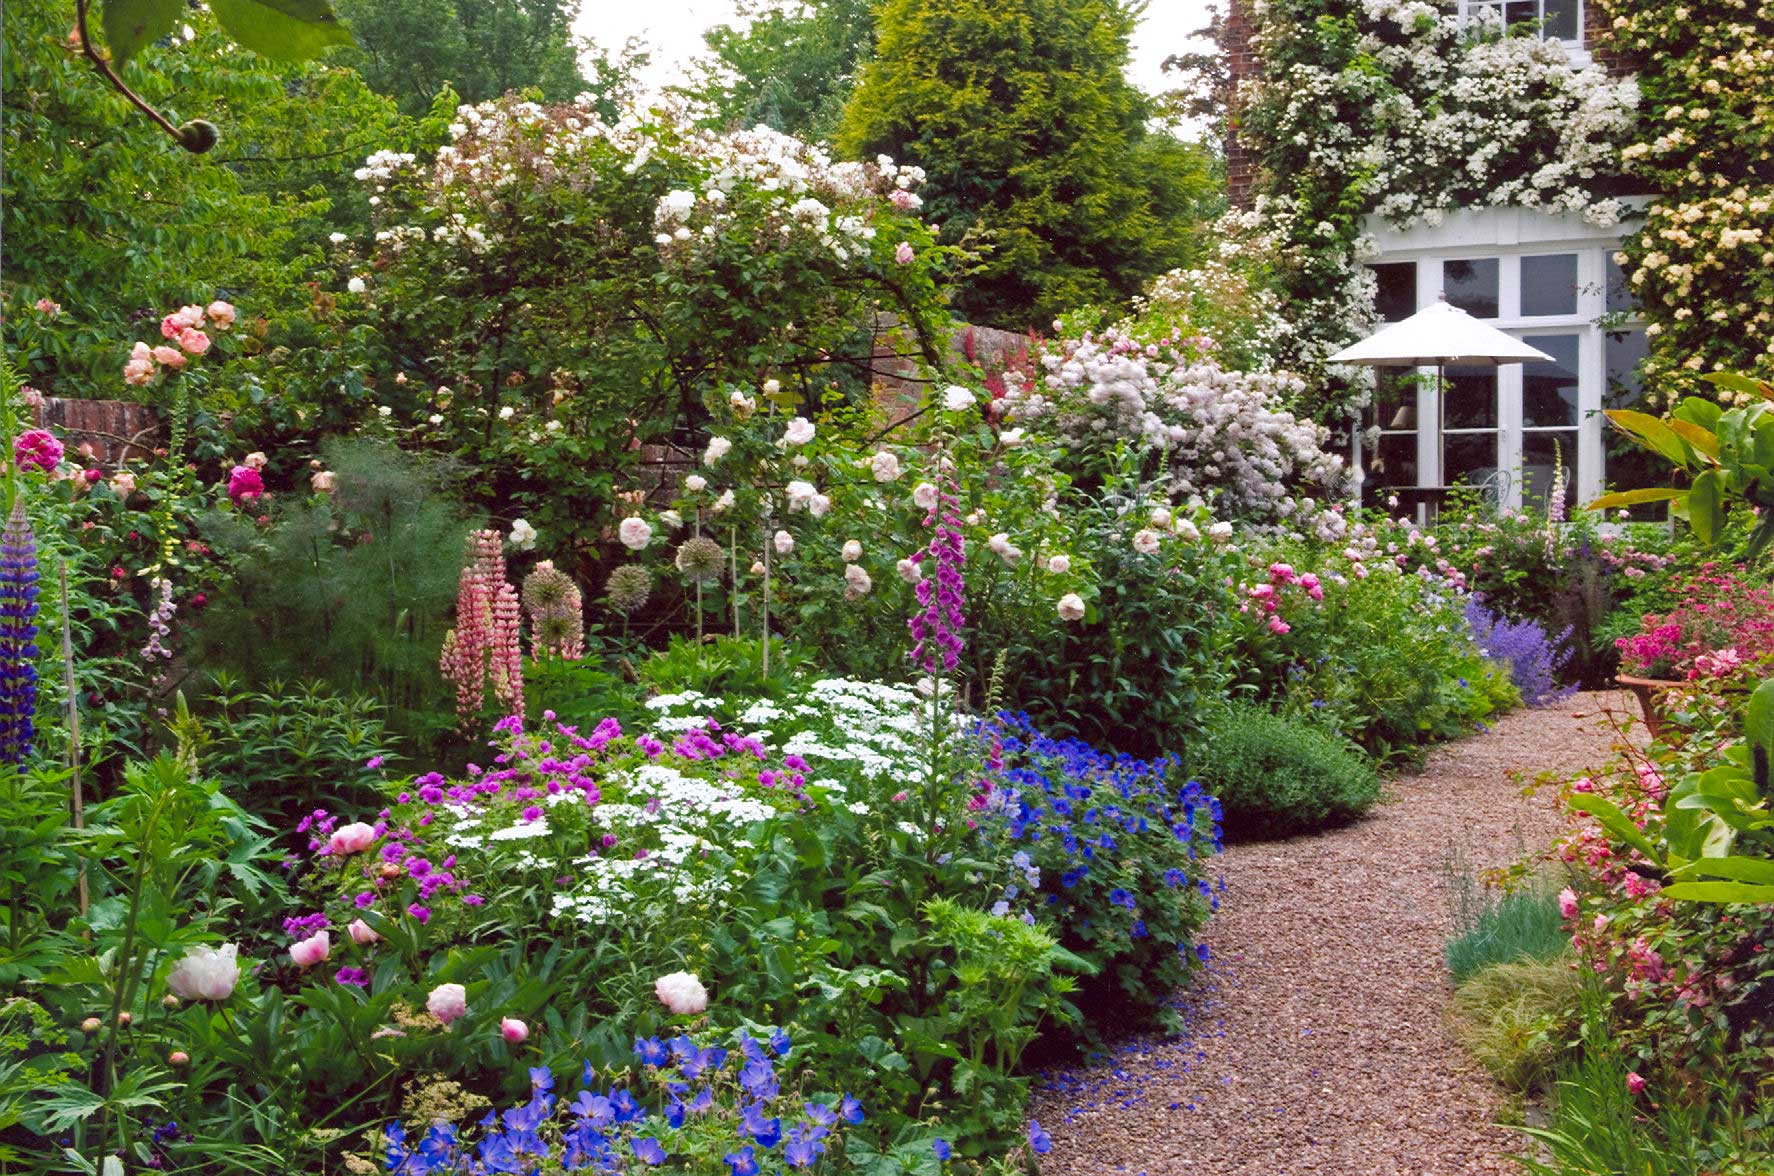 Our Top Ngs Garden Picks To Visit This Summer The